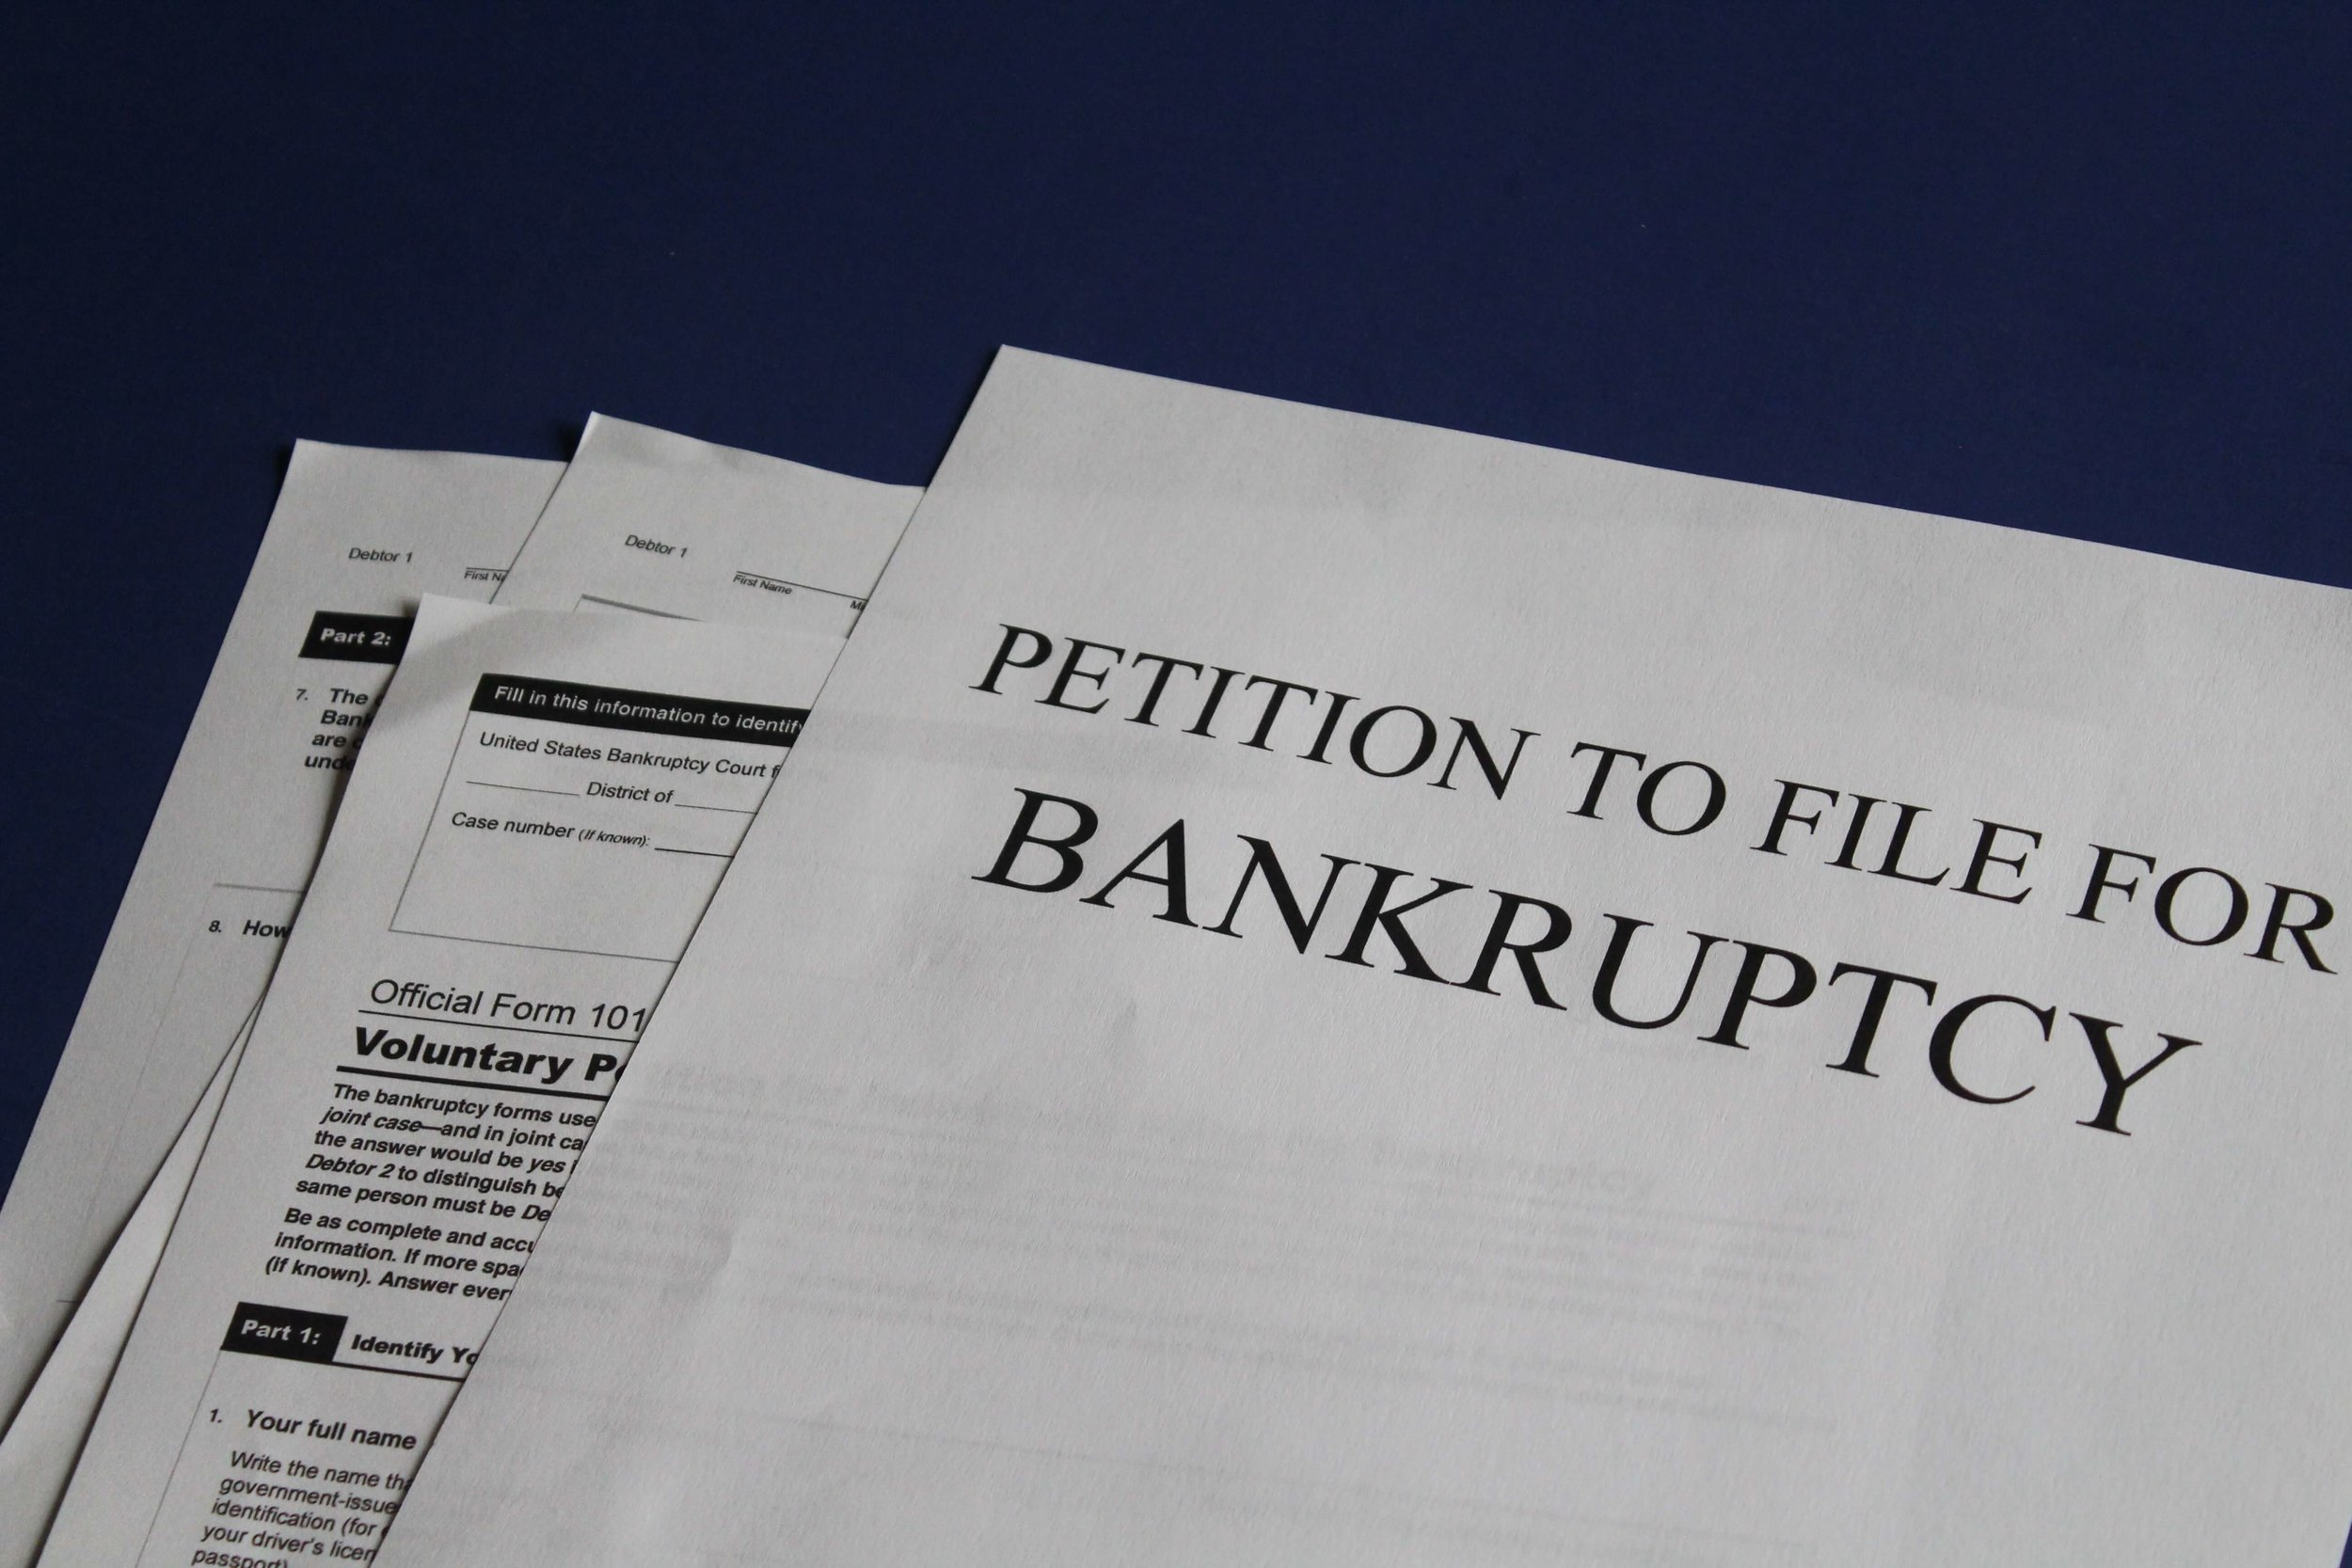 Petition to File Bankrupcy (compressed).jpg